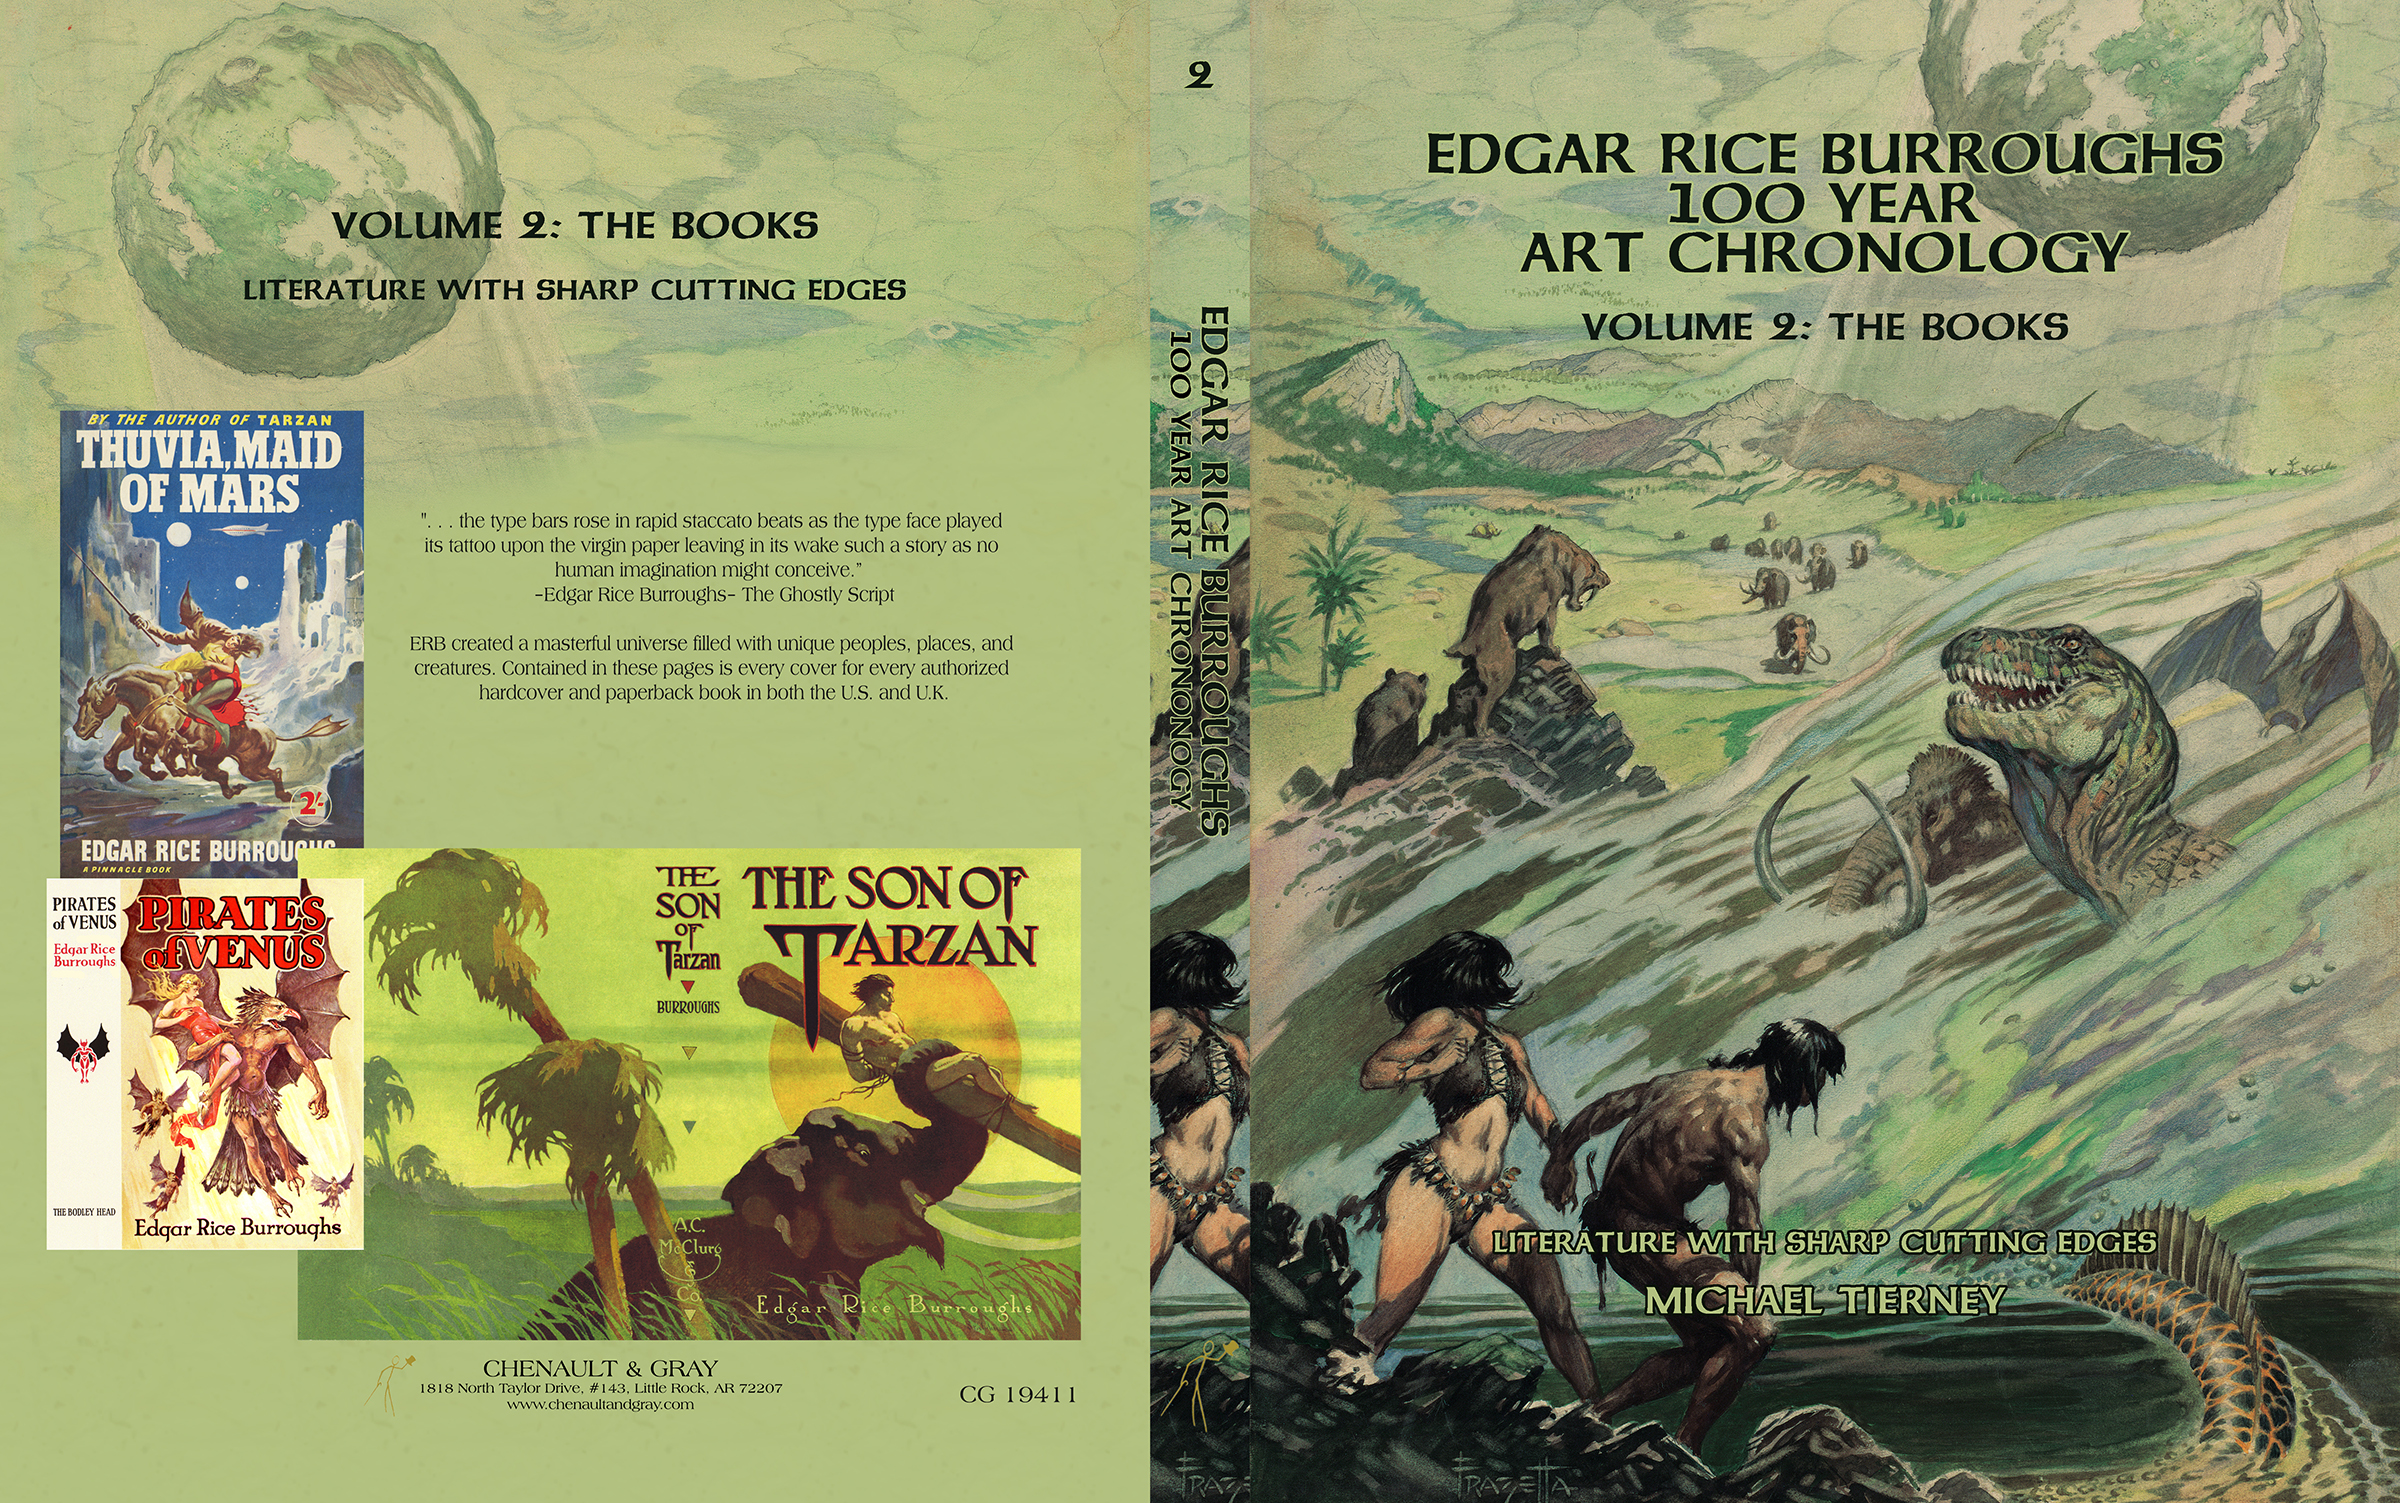 ERB Art Chonology V2 wraparound cover.